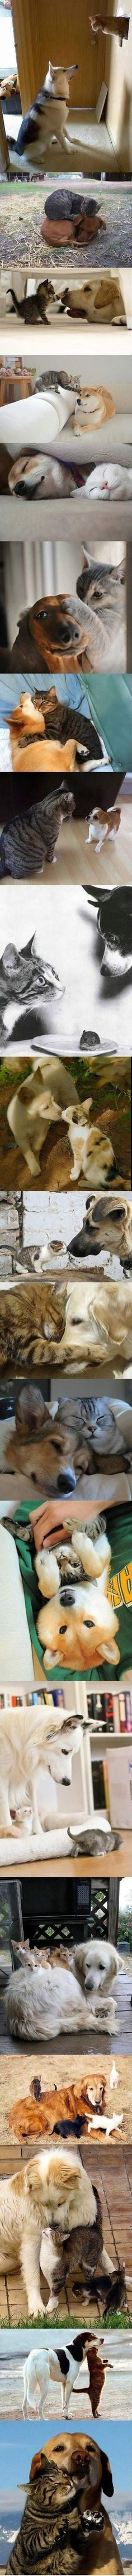 Who says cats and dogs can`t get along?